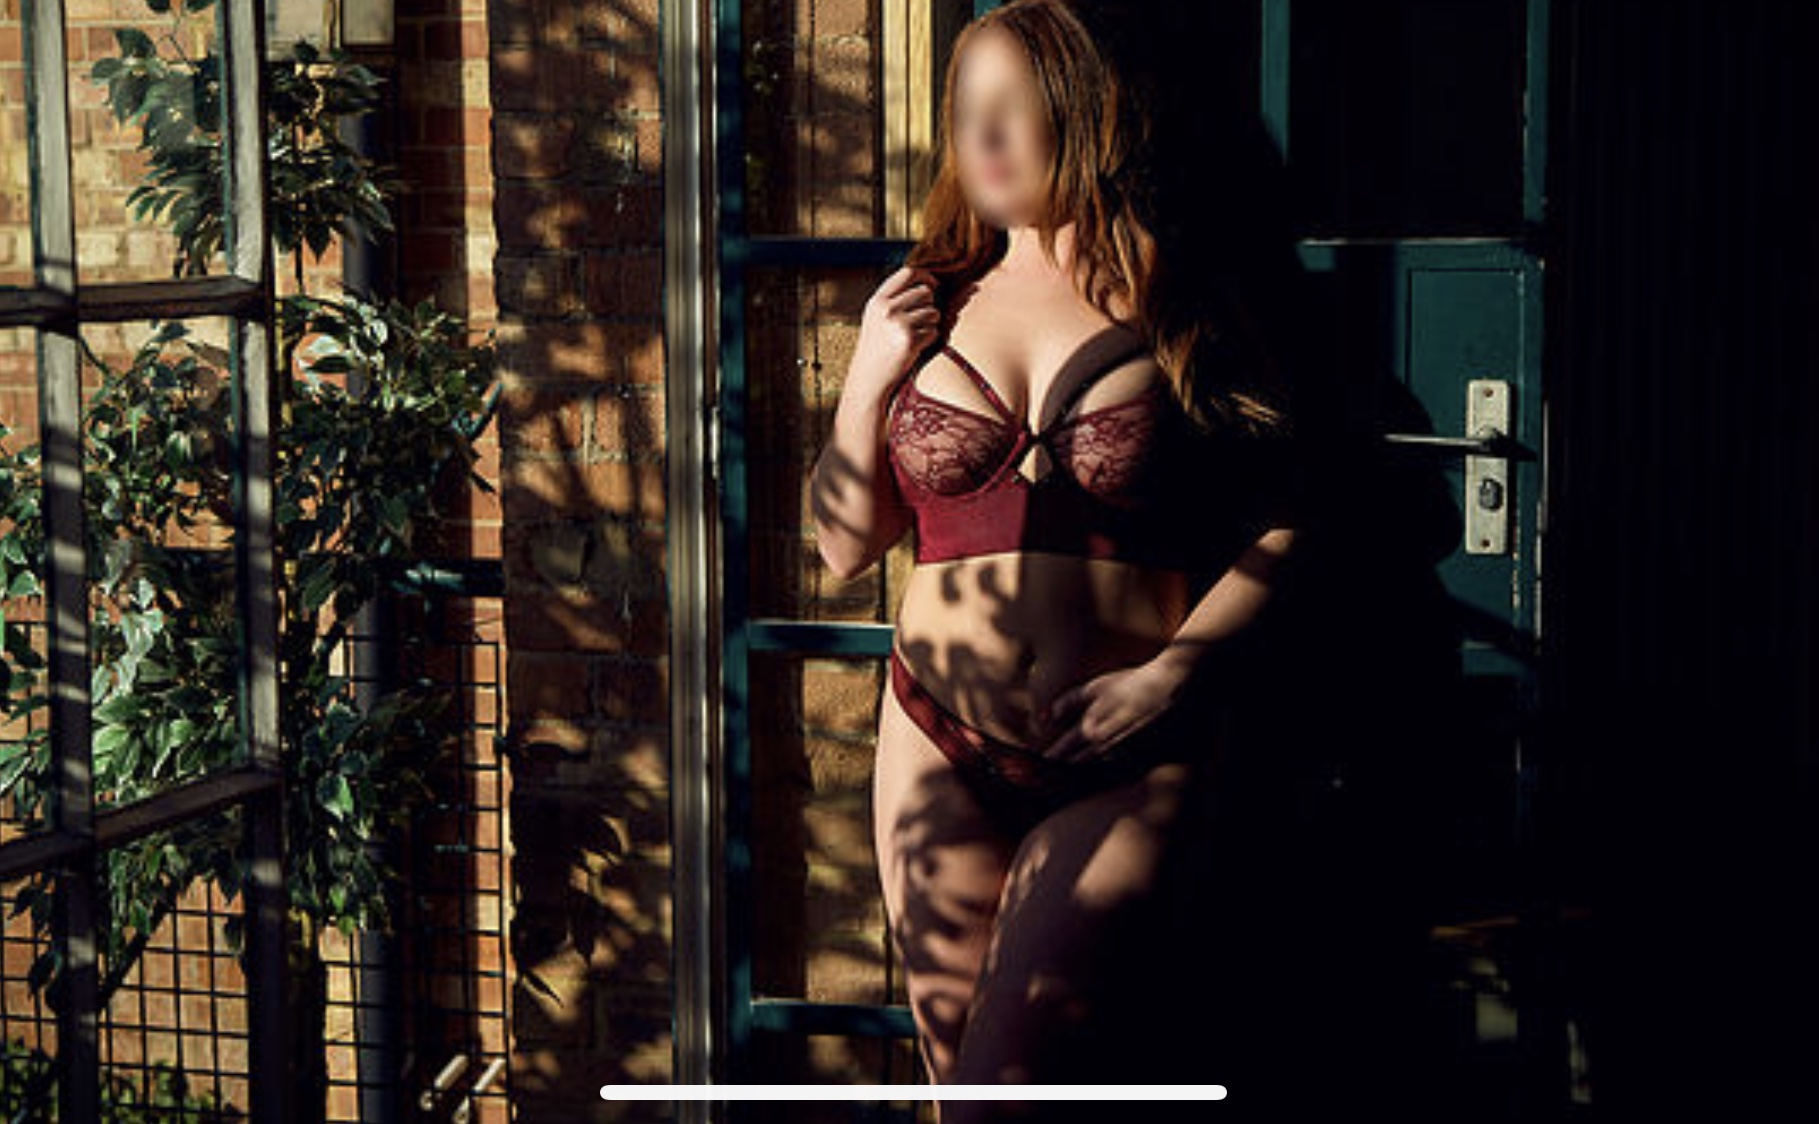 Imogen Mae - Indulge with this beautiful red haired minks, SPECIALISING in sensual GFE AND DECADENT RENDEZVOUS.